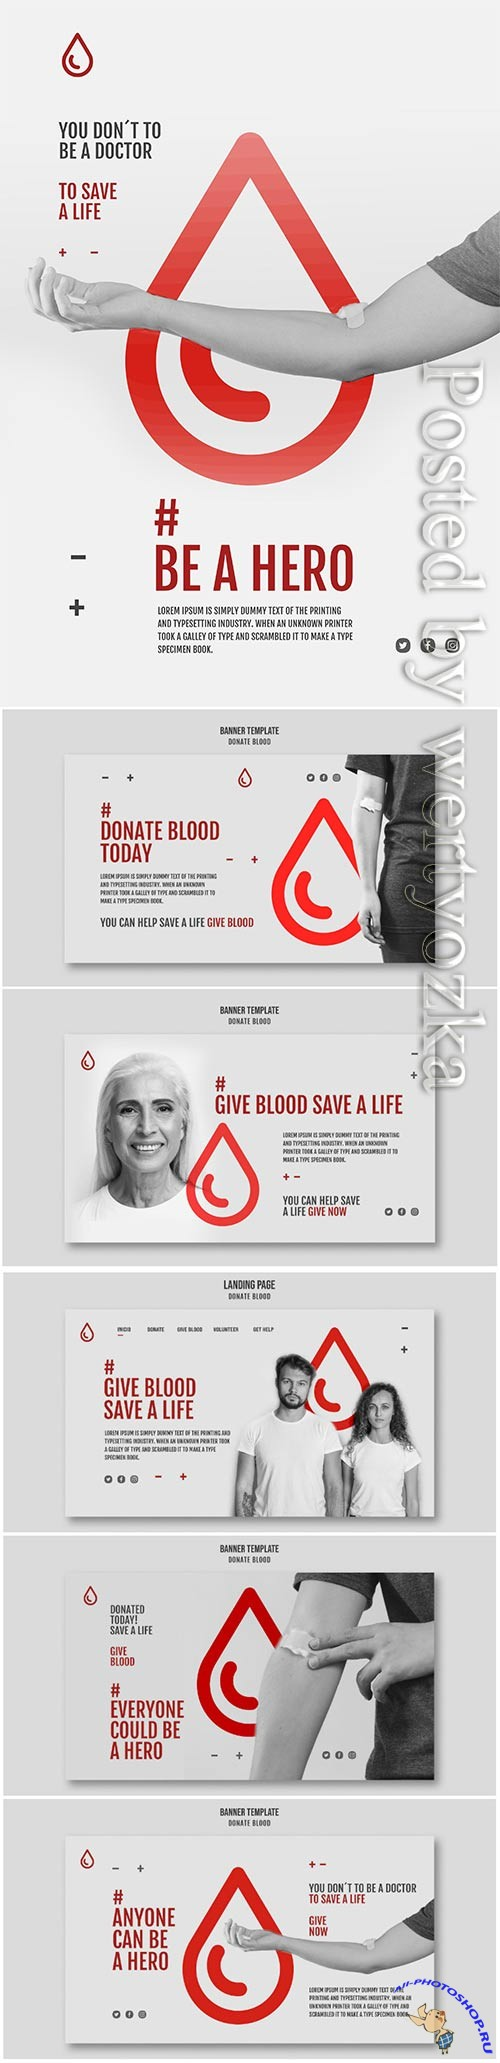 Donate blood campaign banner style